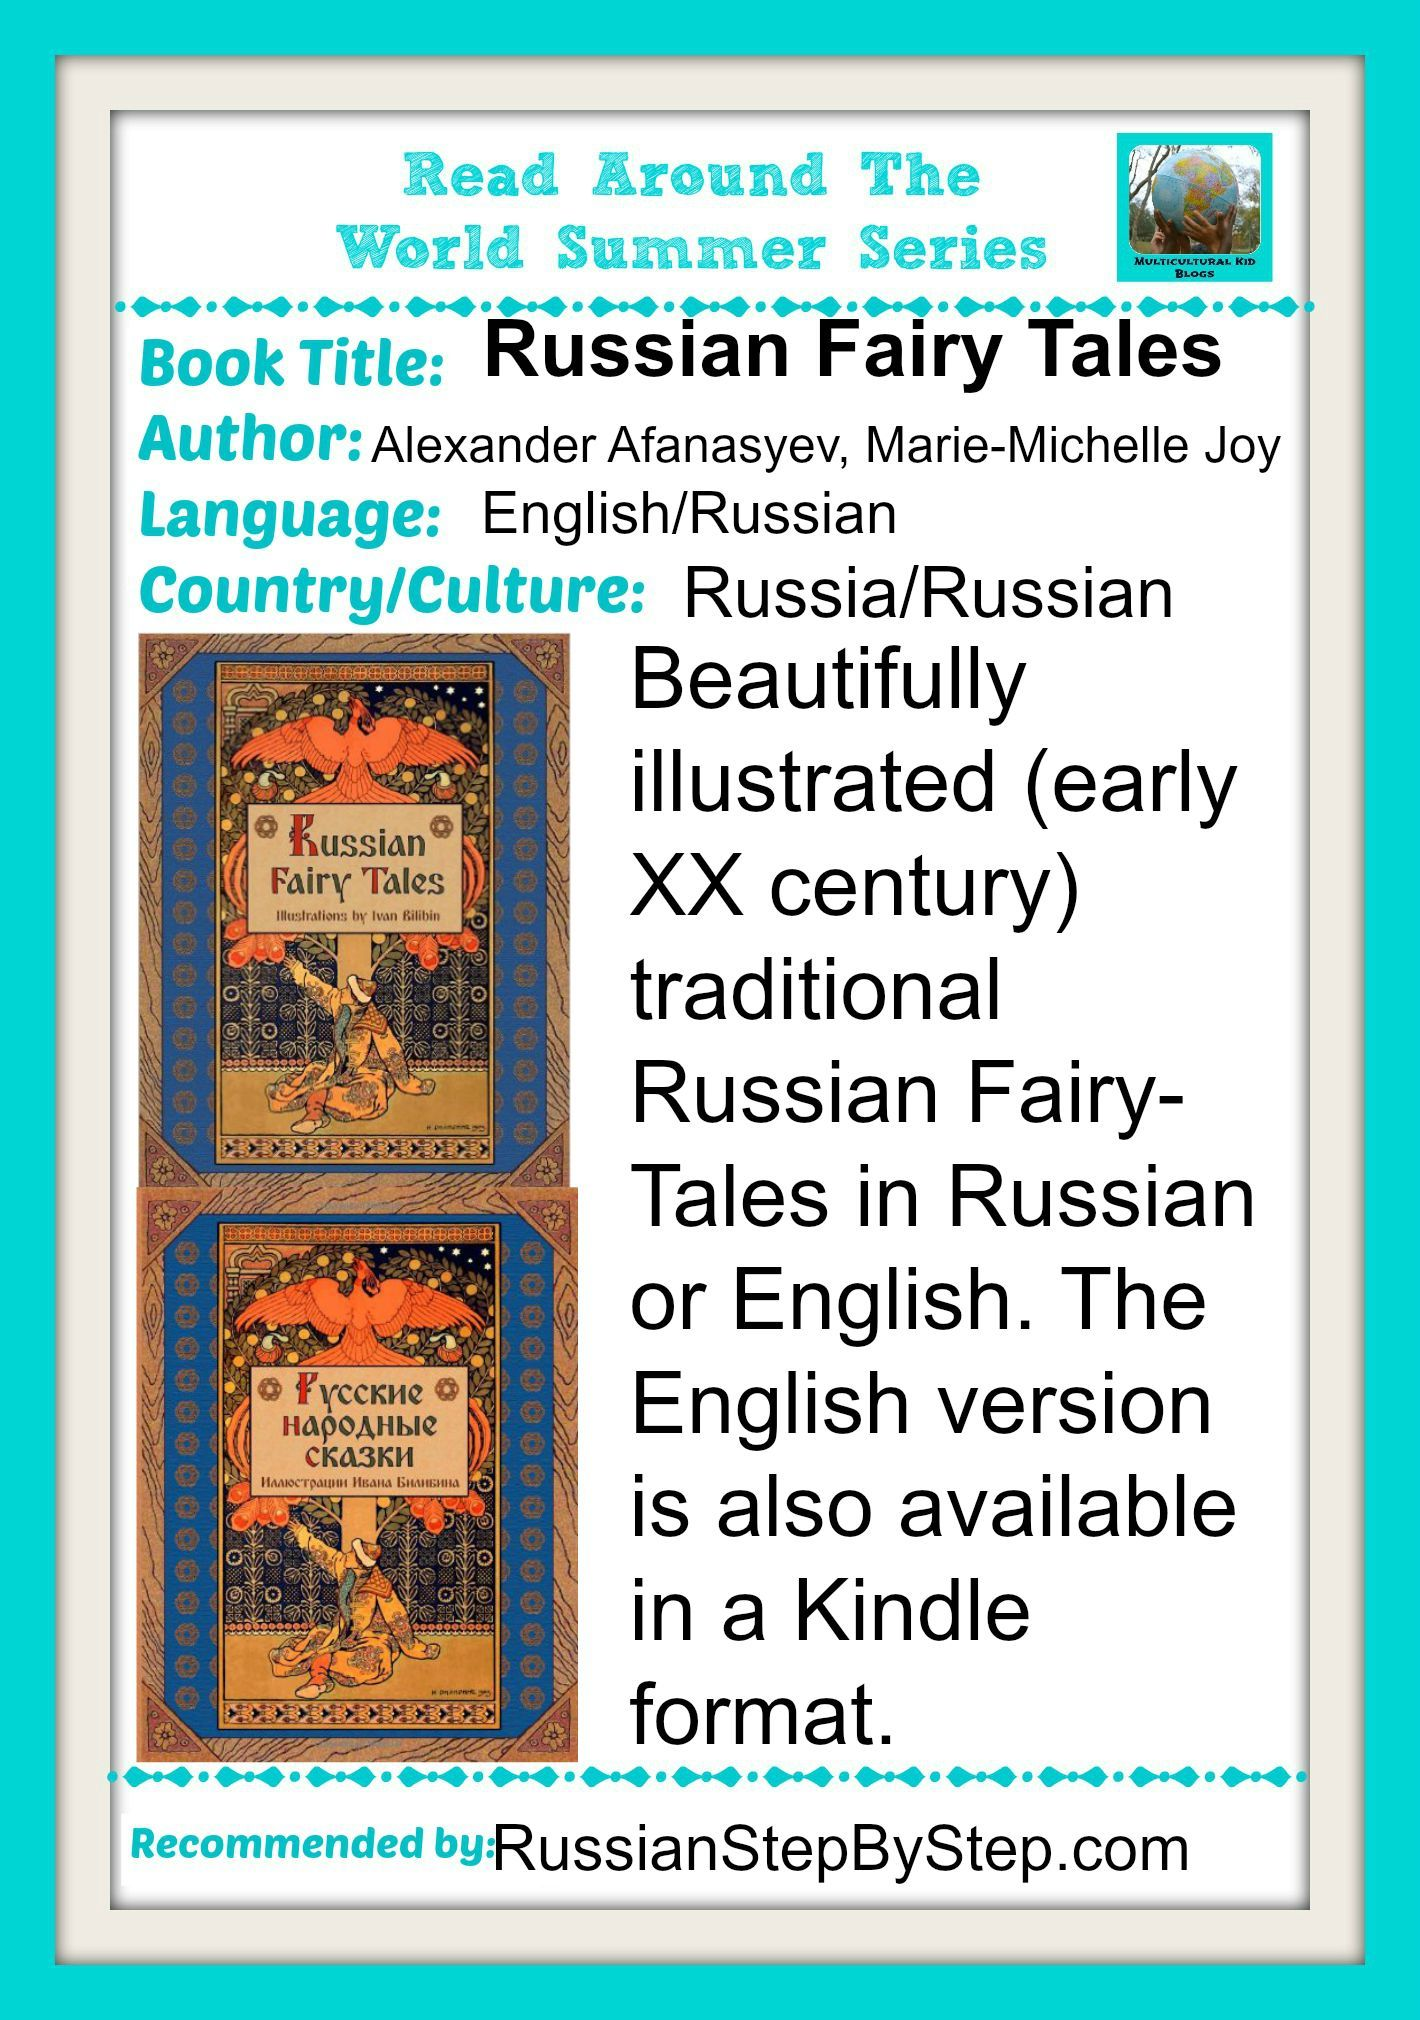 Russian Fairy Tales Bilingual Edition A Great Find For A Builingual Child Book Recommendations Learn Russian Fairy Tales